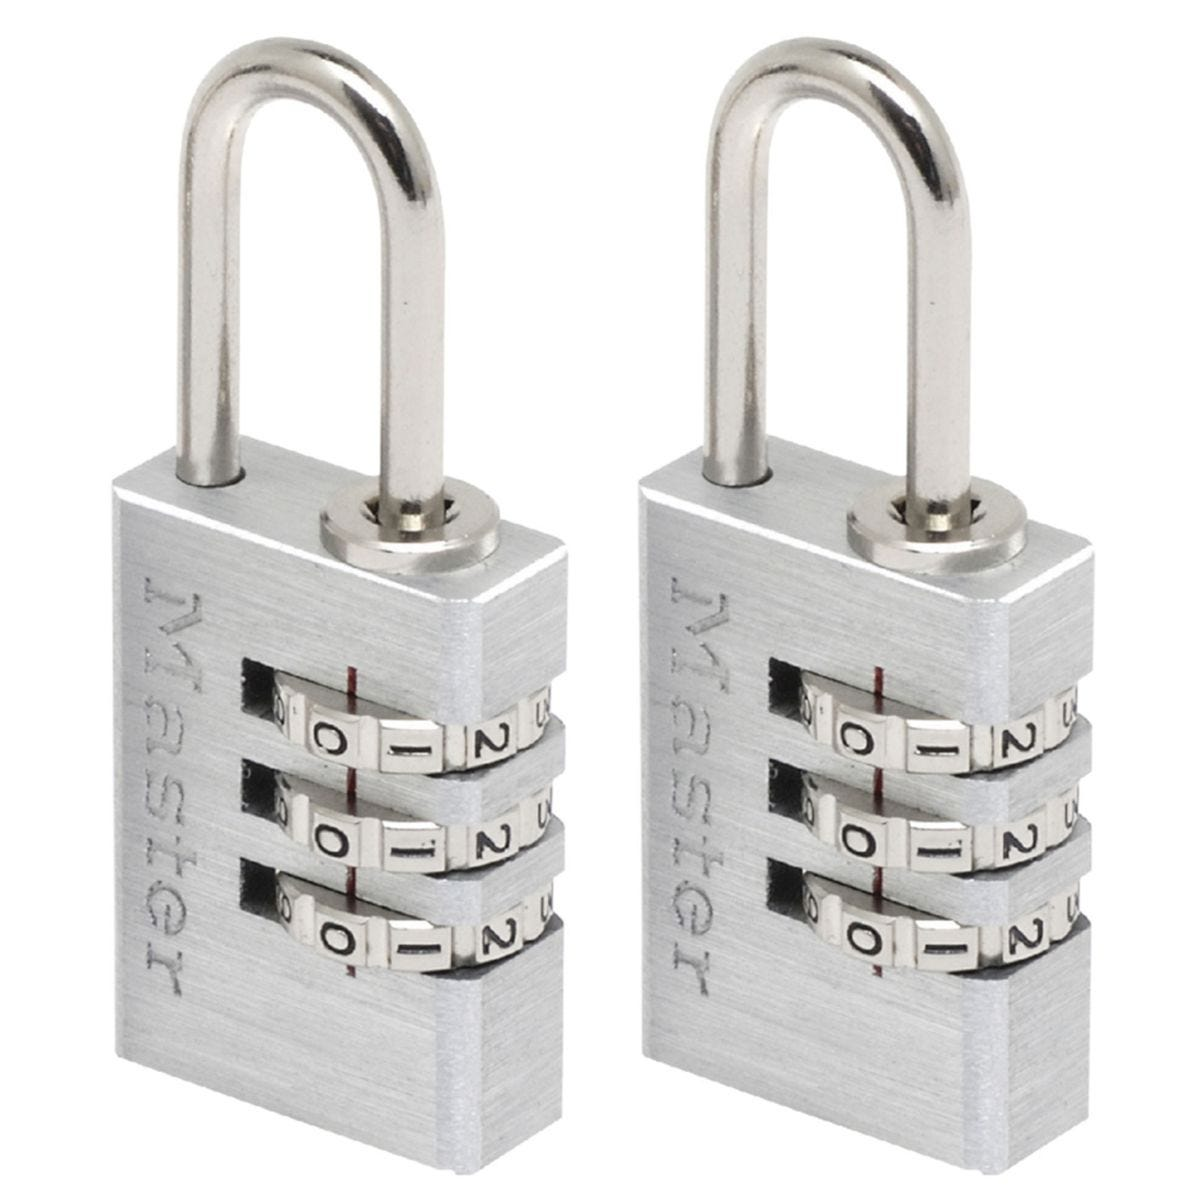 Master Lock 20mm Solid Aluminium Body Set-Your-Own Combination - Pack of 2